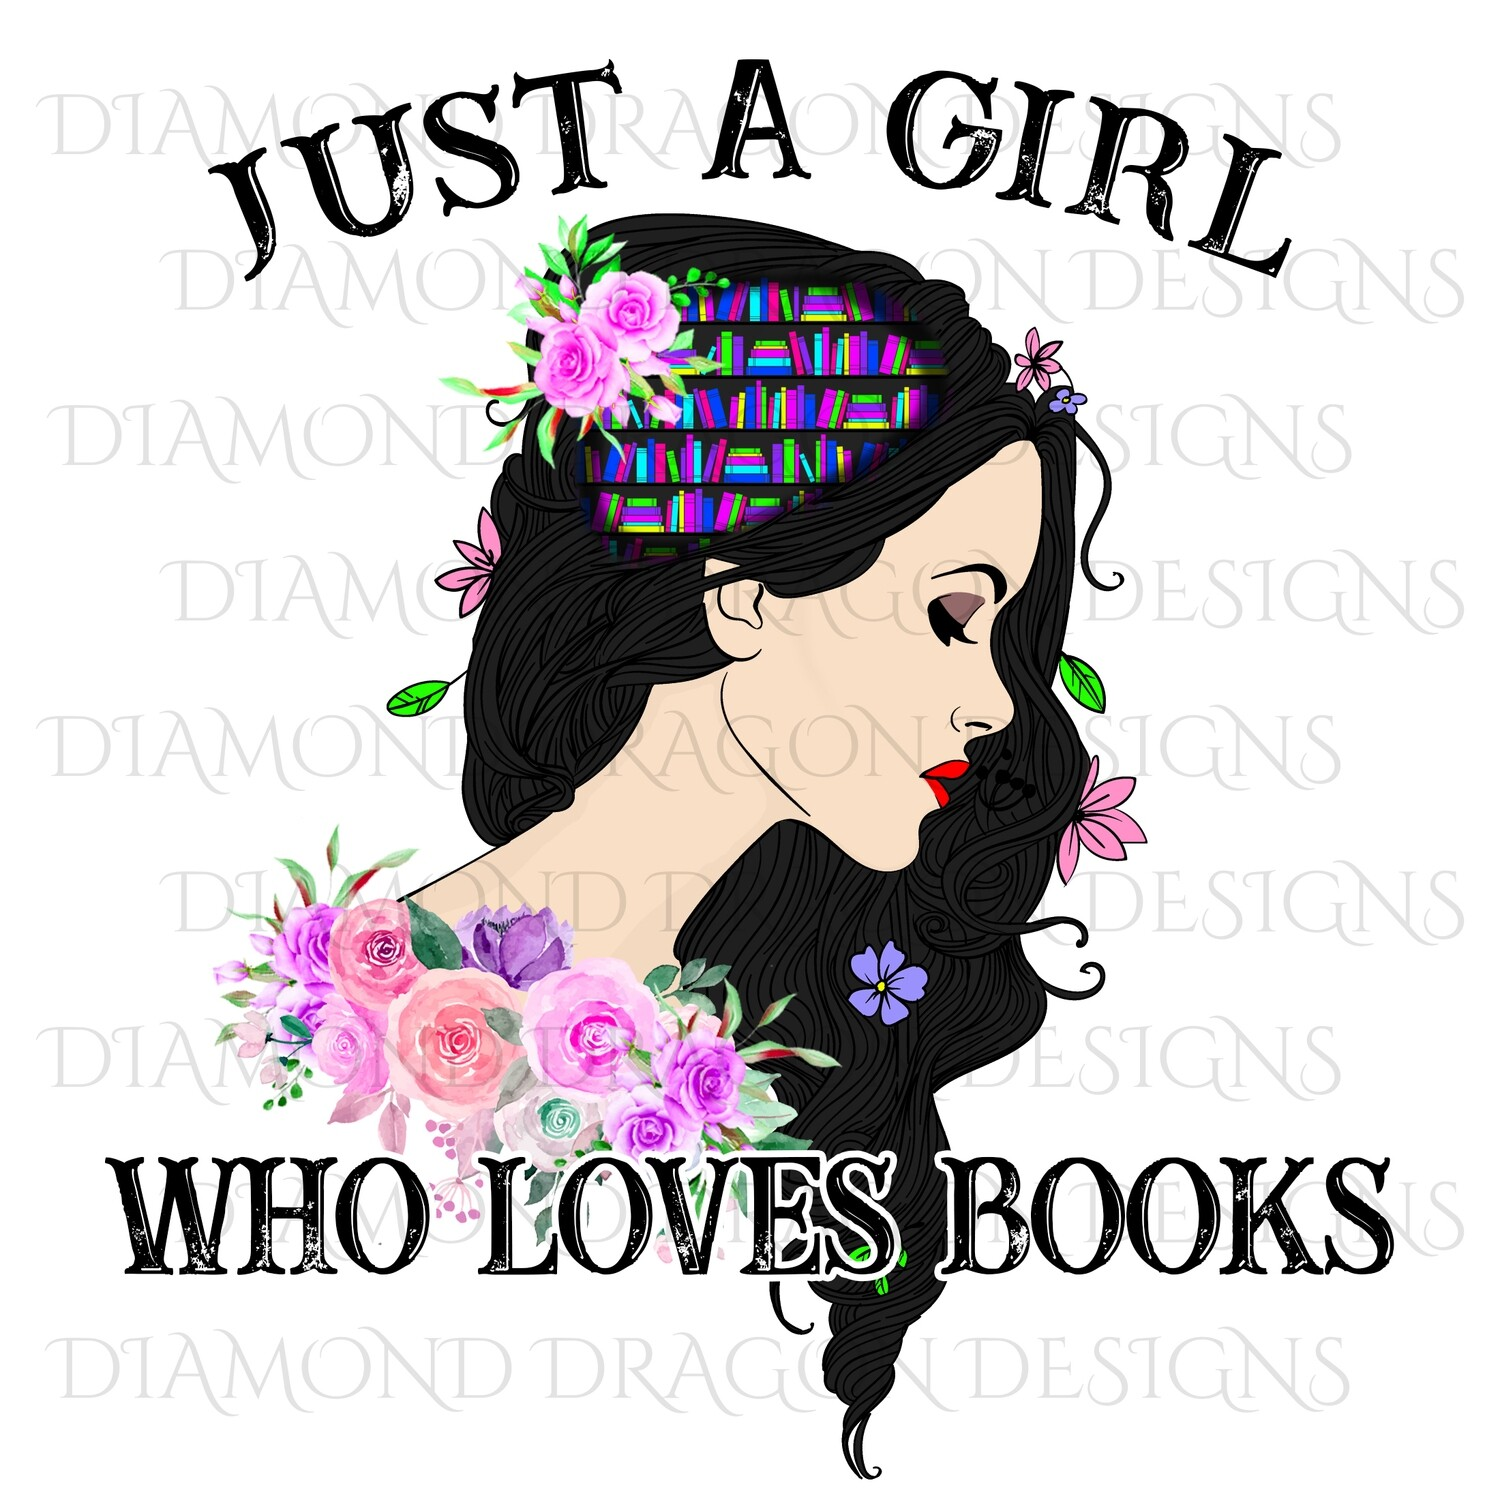 Books - Whimsical, Black Haired, Just a Girl Who Loves Books, Lady Library, Floral